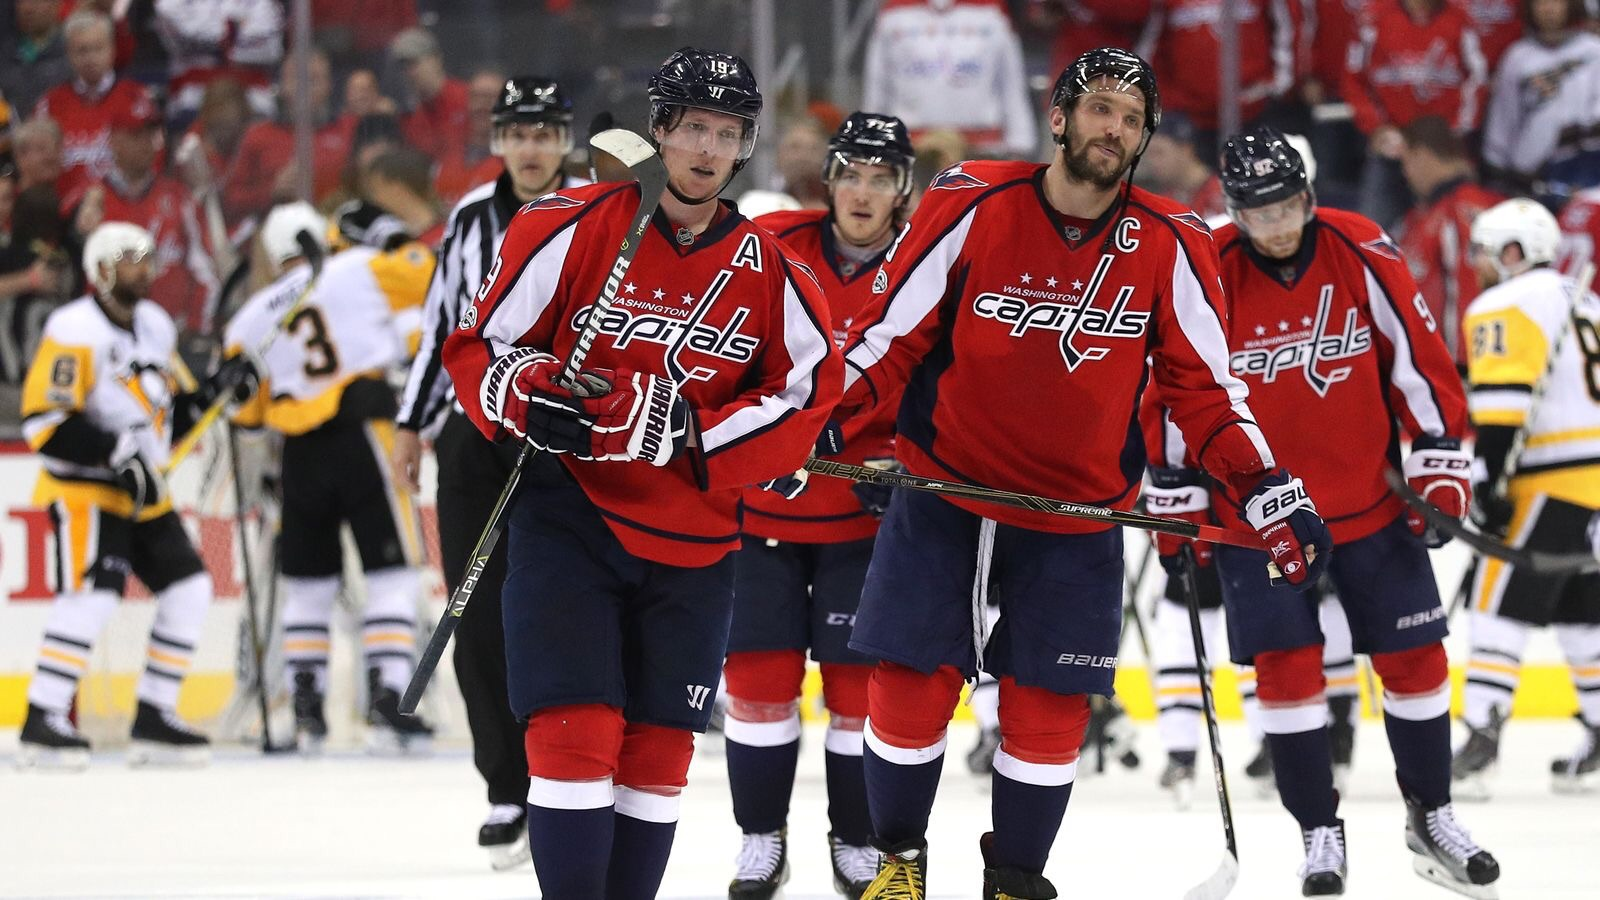 Capitals fall short in game 7